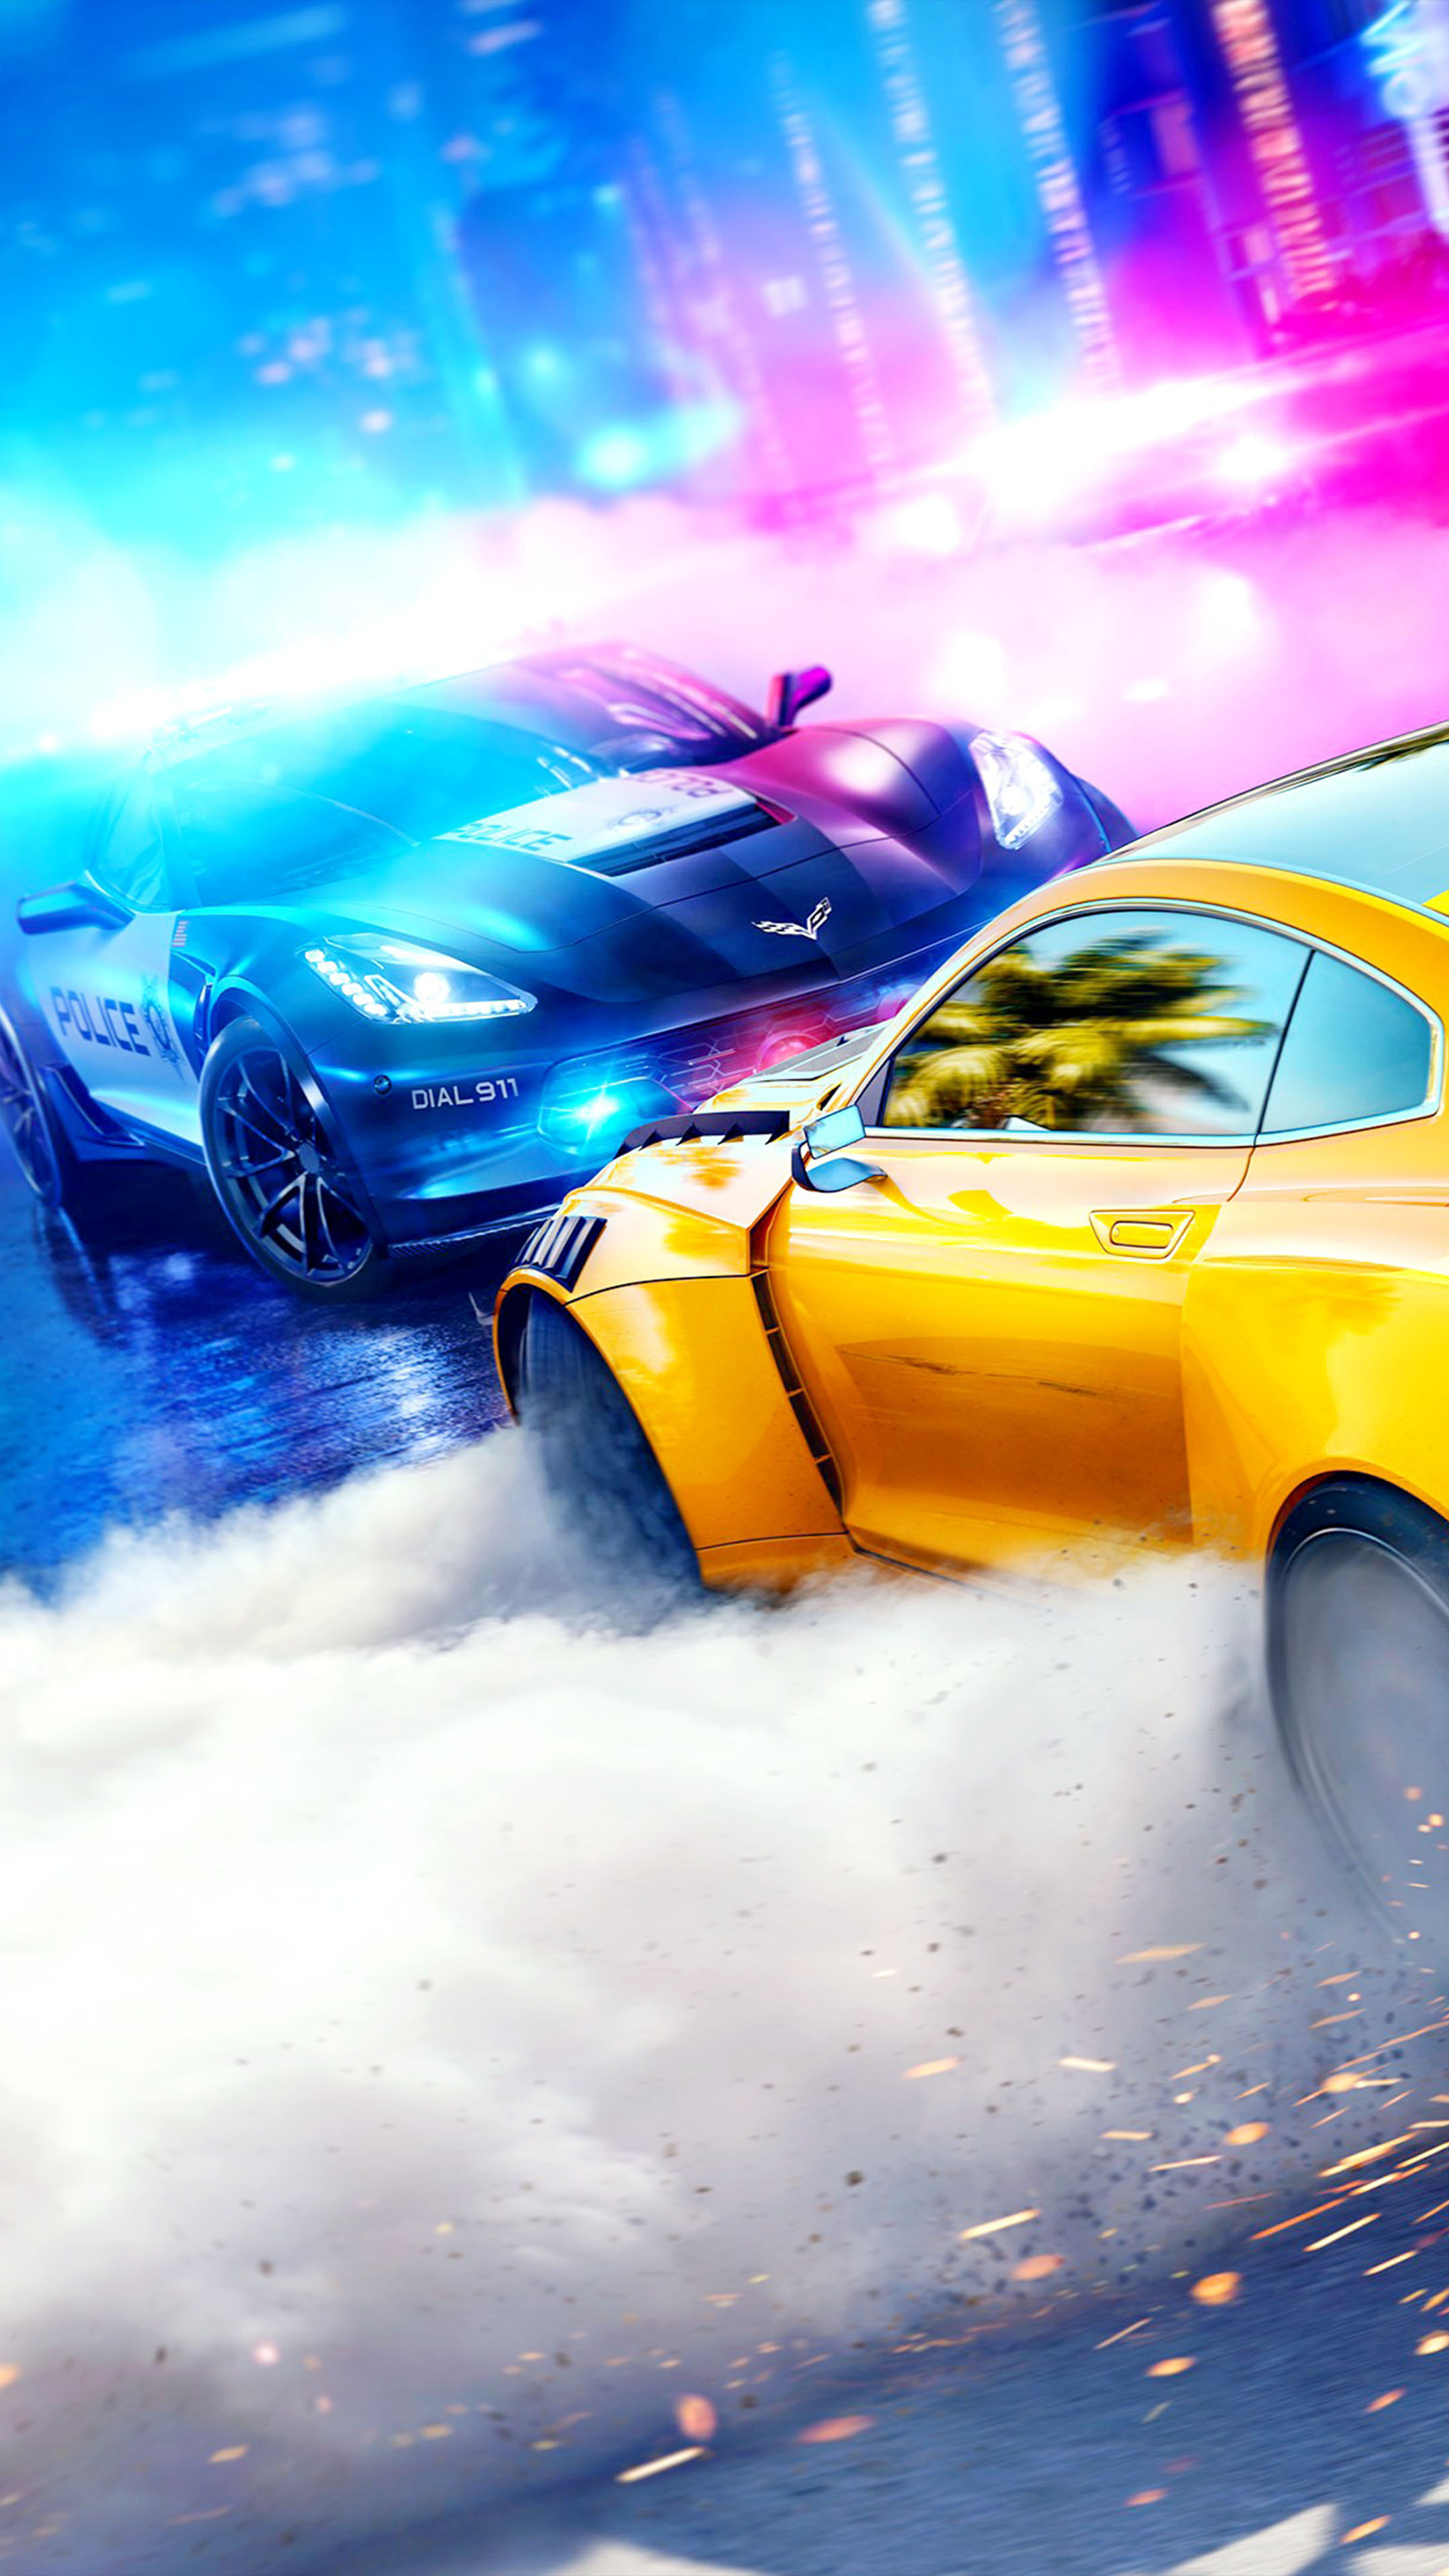 Need For Speed Heat Free Pure 4k Ultra Hd Mobile Wallpaper